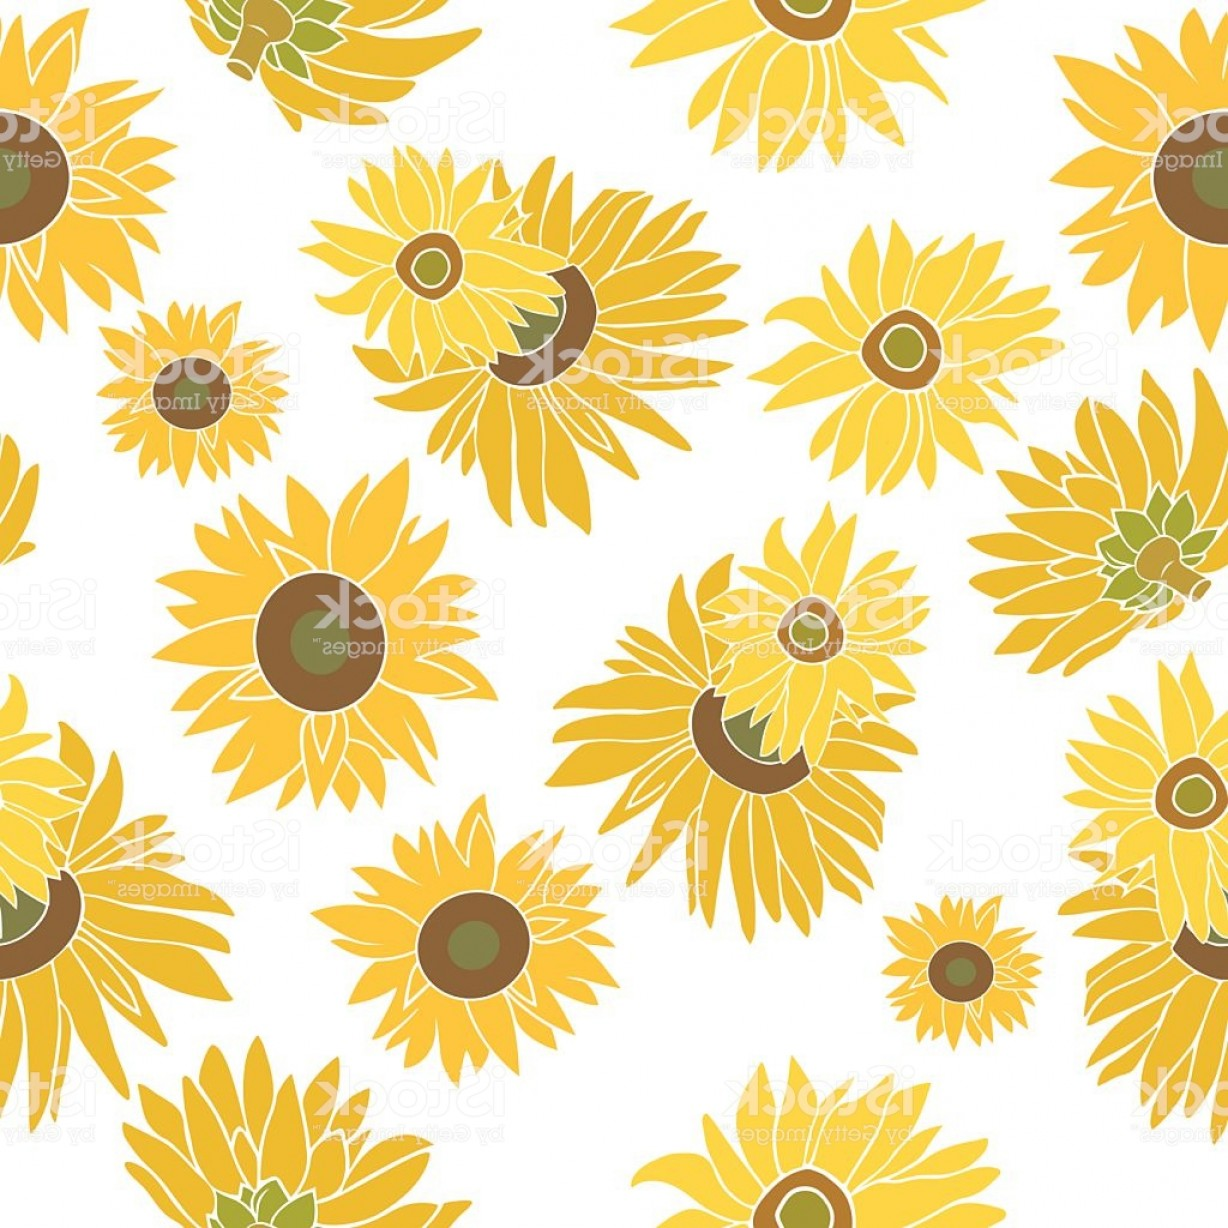 Sunflower Vector Pattern: Sunflower Vector Seamless Pattern On A White Background Gm